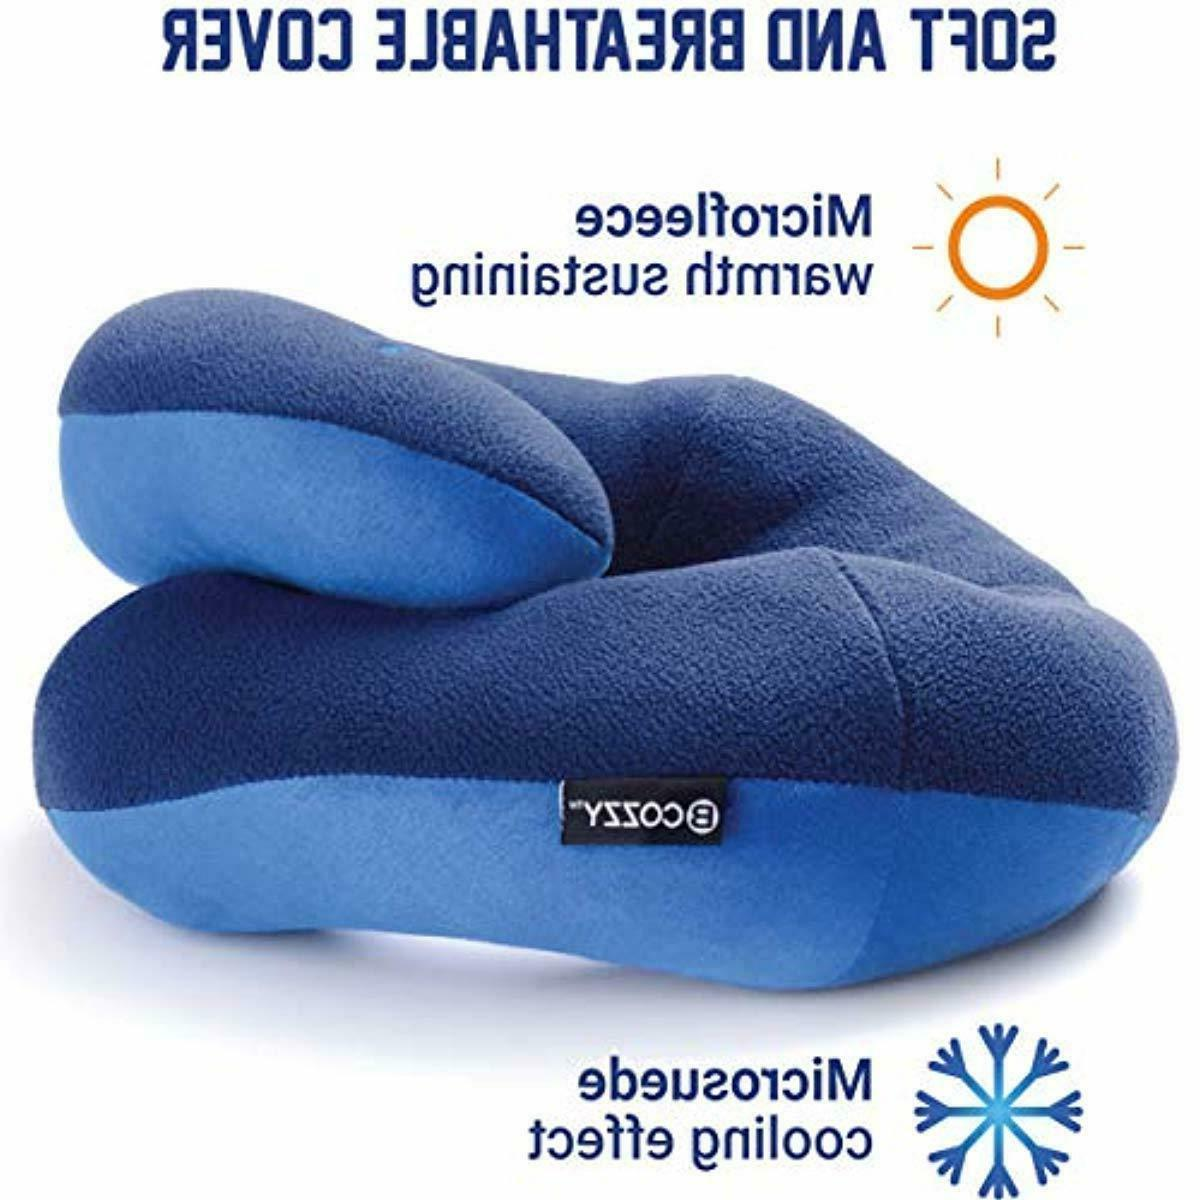 BCOZZY Travel Pillow- Keeps Head from Falling Forward Comf